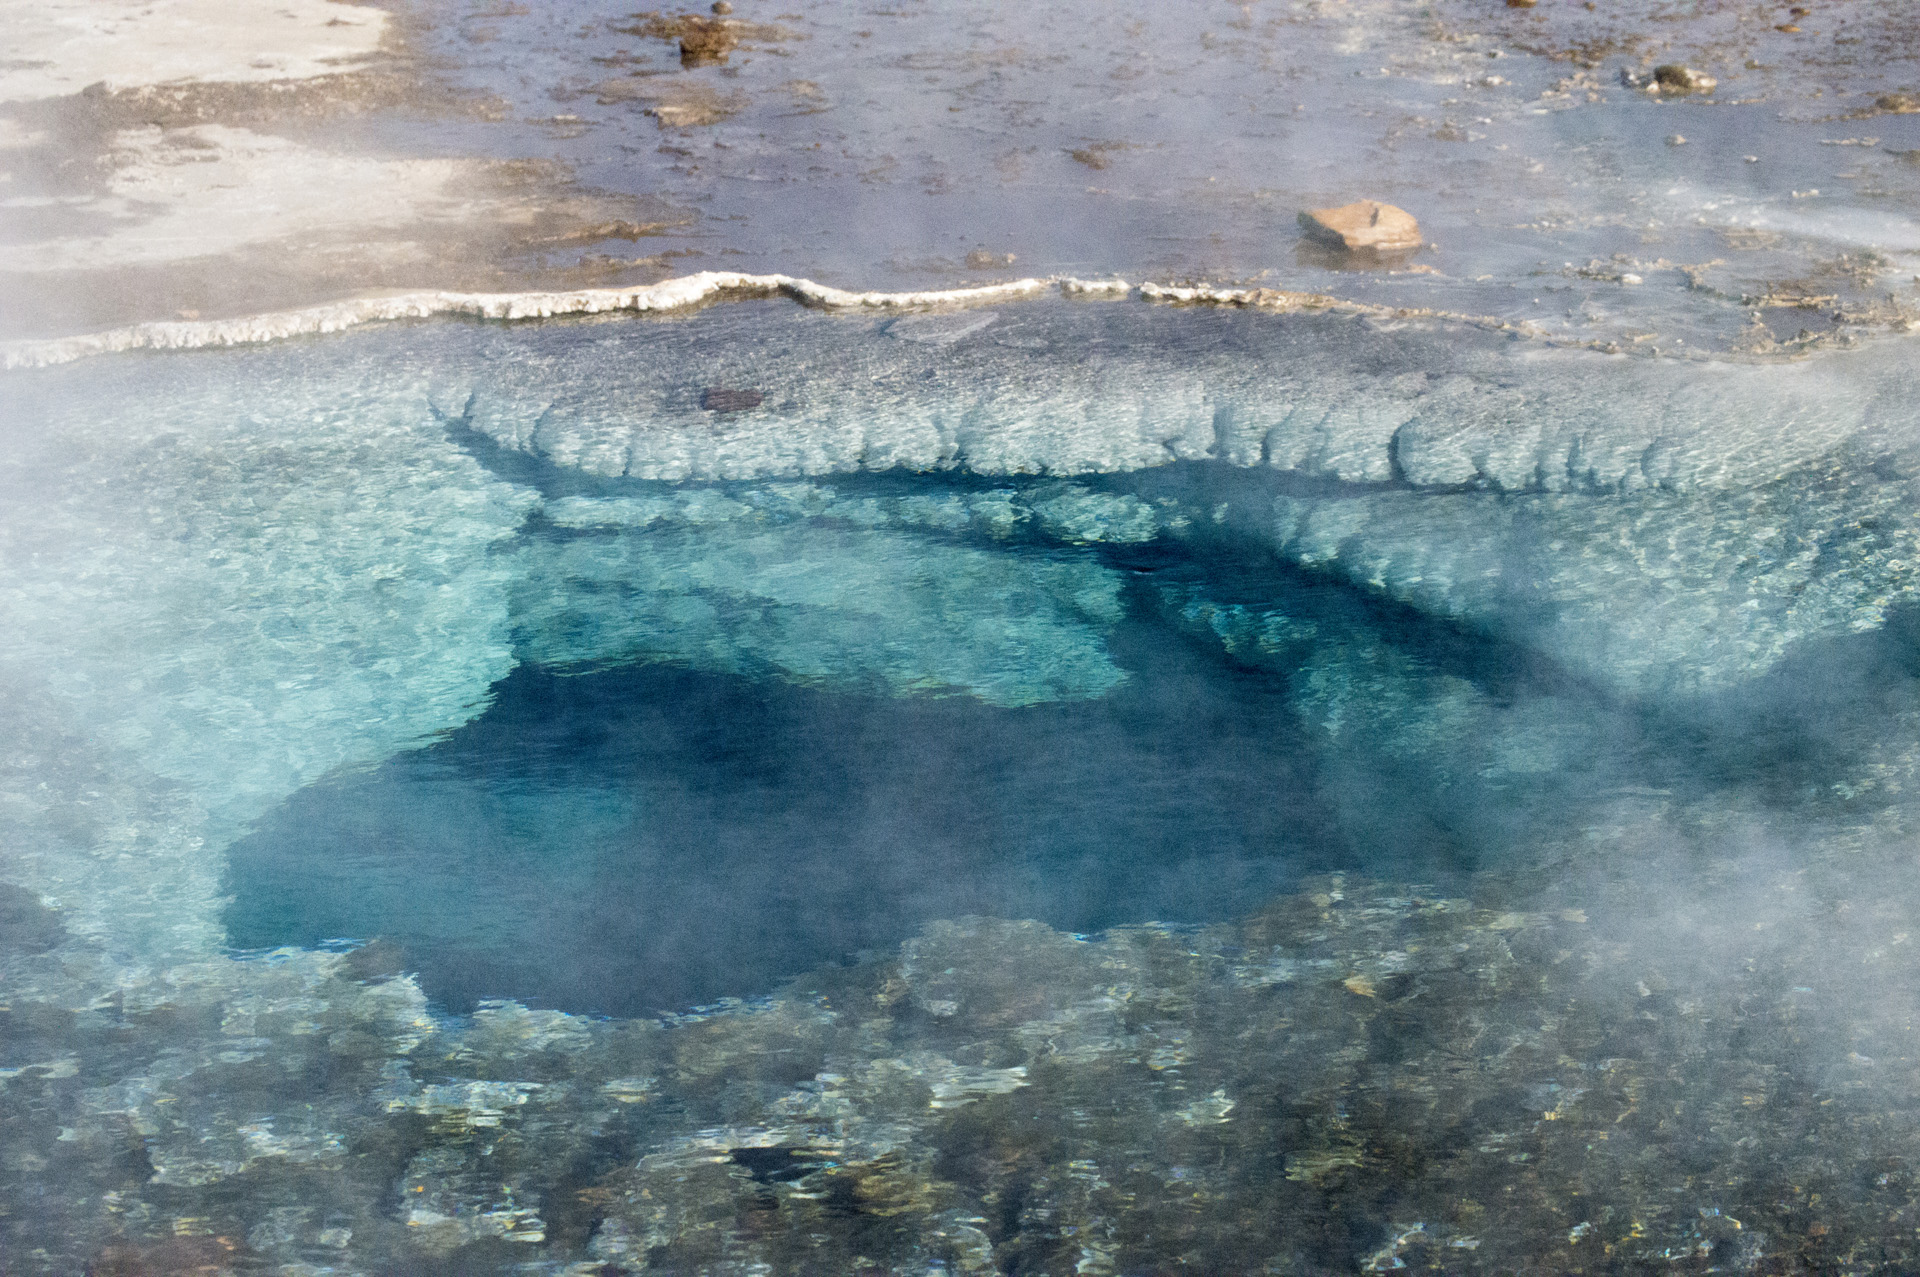 Southern spring of Blesi in the Geysir Hot Spring Area, Haukadalur Valley, Iceland